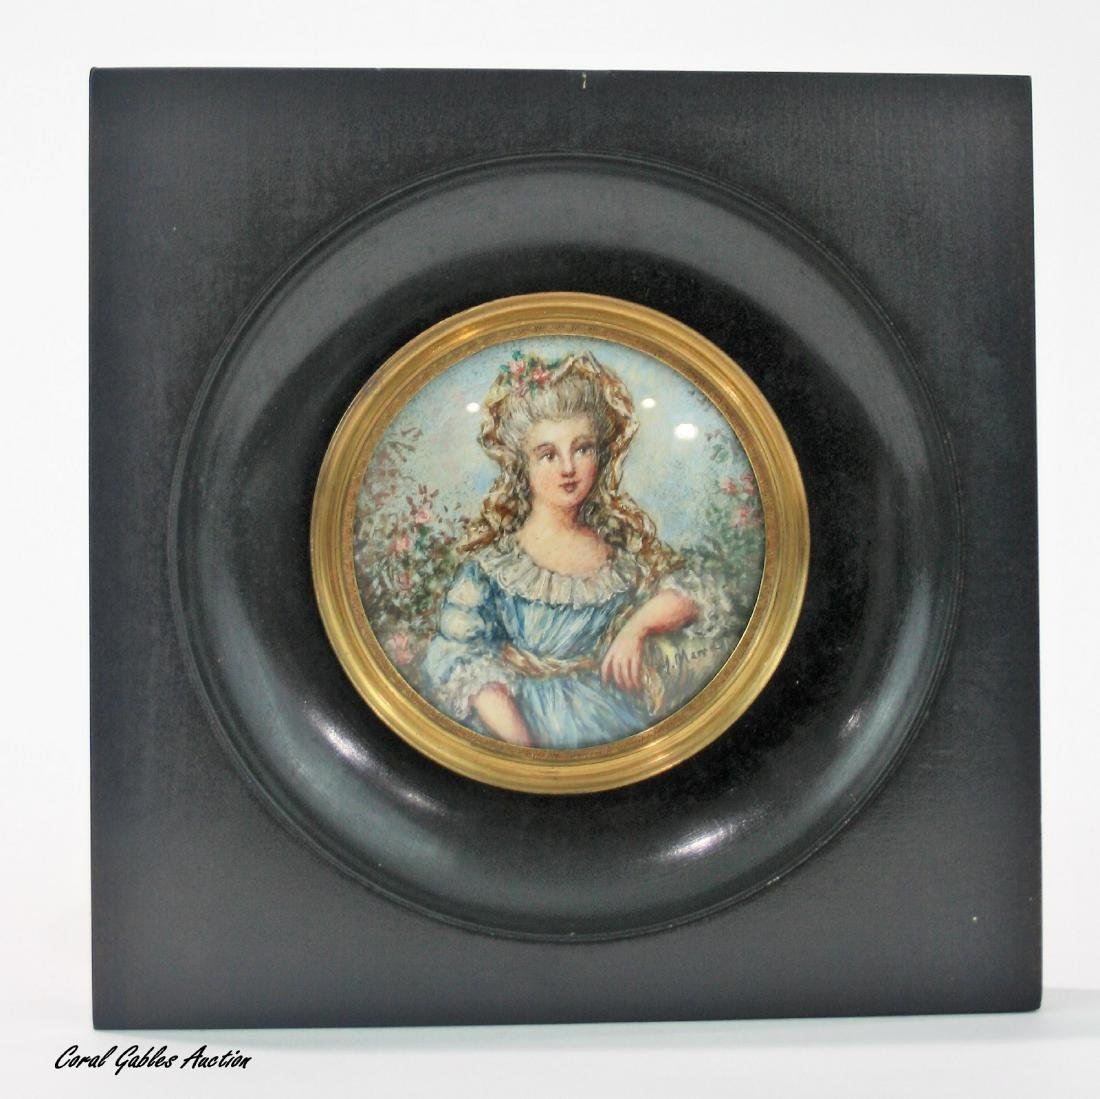 Miniature of the 19th or 20th century